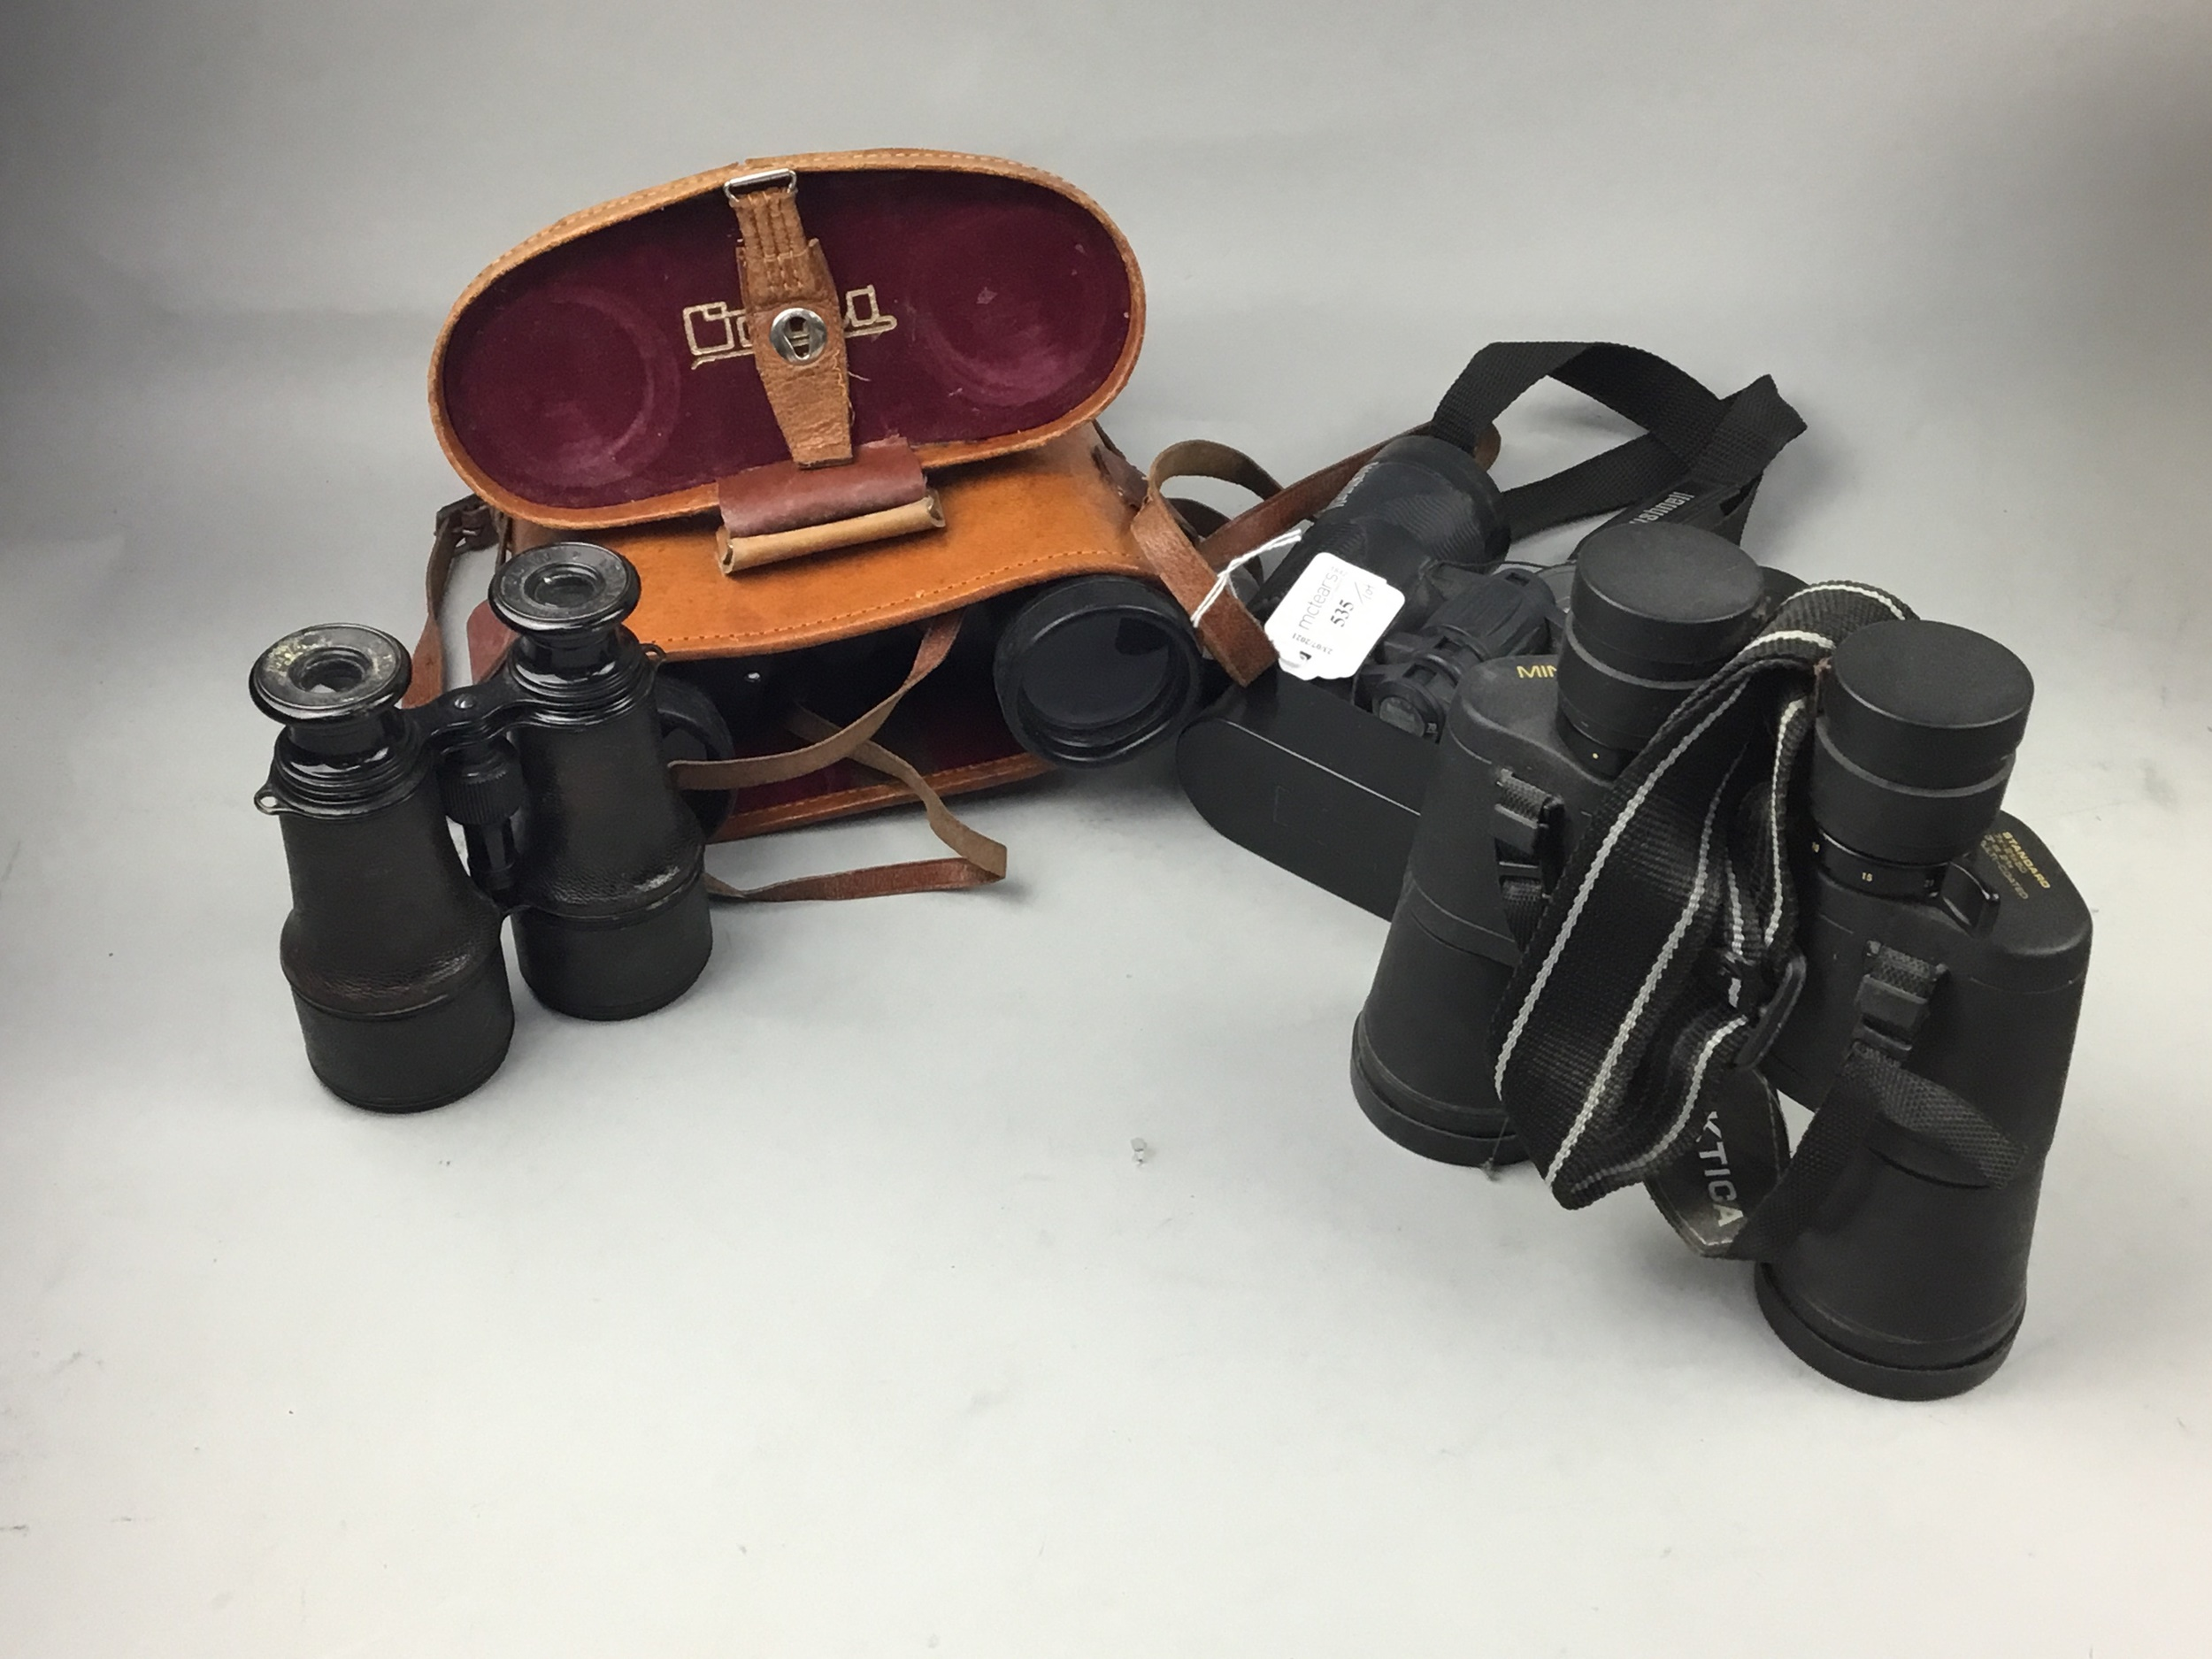 A PAIR OF BUSHNELL BINOCULARS AND OTHER VARIOUS BINOCULARS